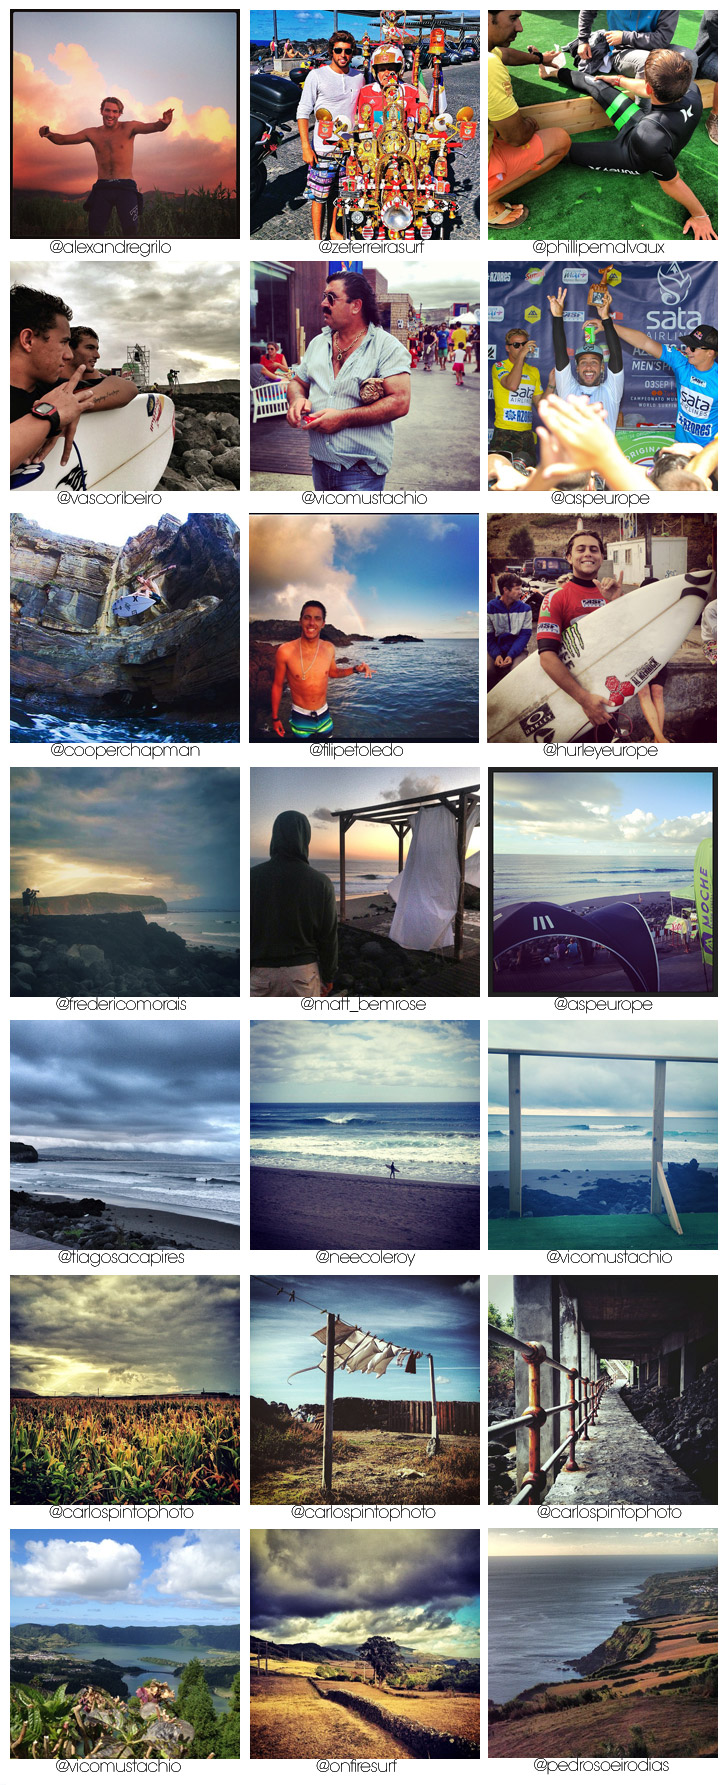 Sata-Airlines-Azores-Pro-Instagrams-1